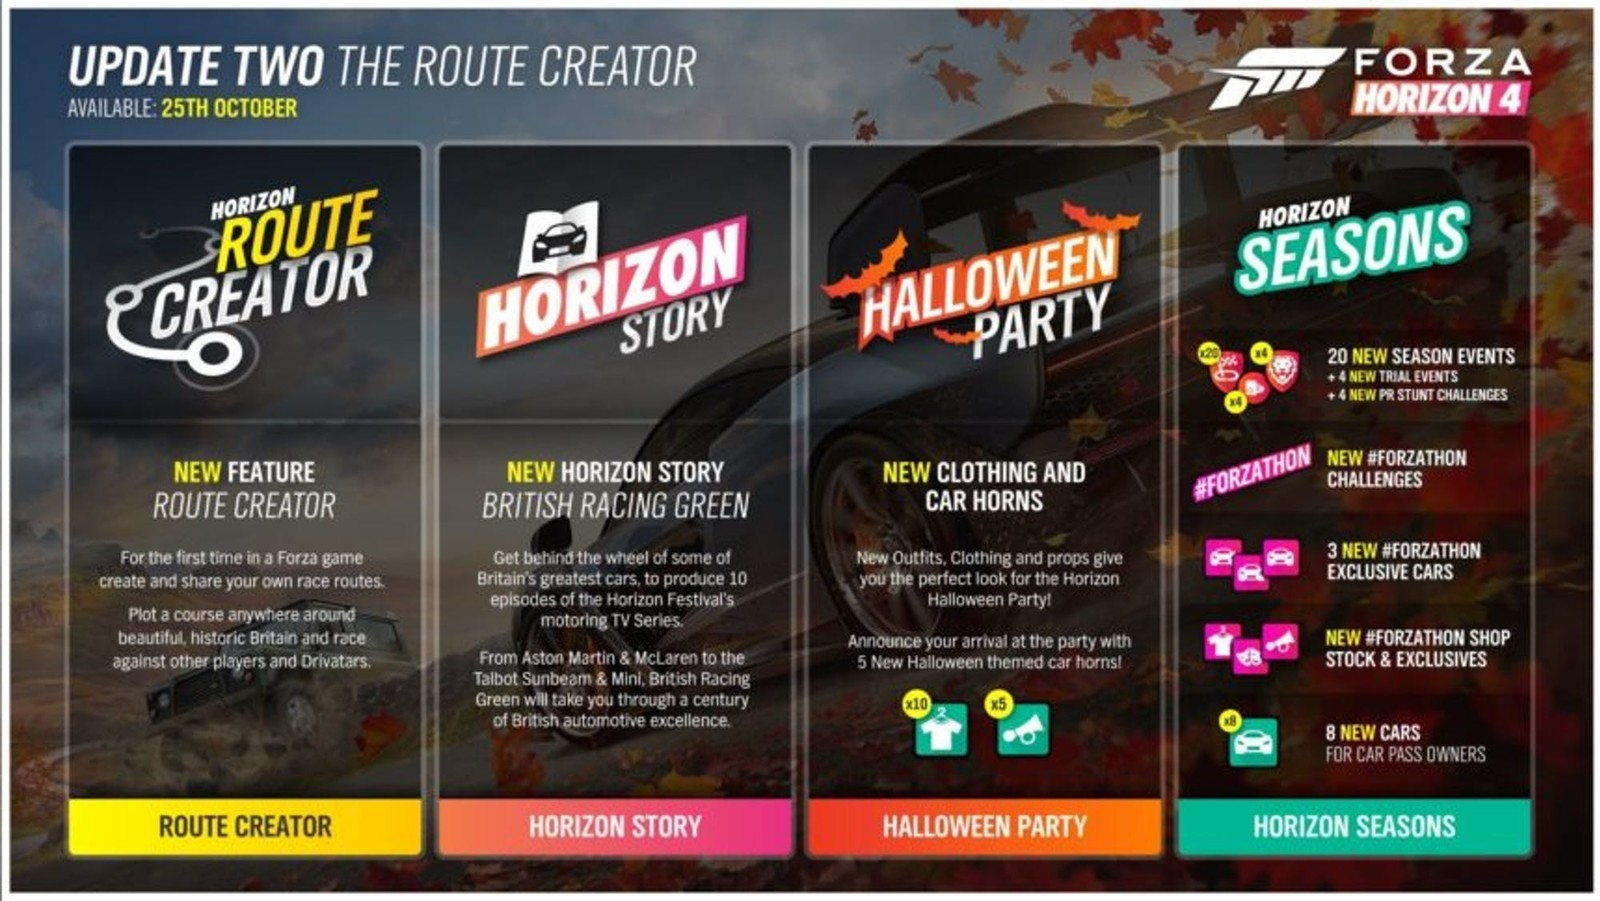 forza horizon 4 mise jour route creator et autres joyeuset s arrivent xbox one mag. Black Bedroom Furniture Sets. Home Design Ideas